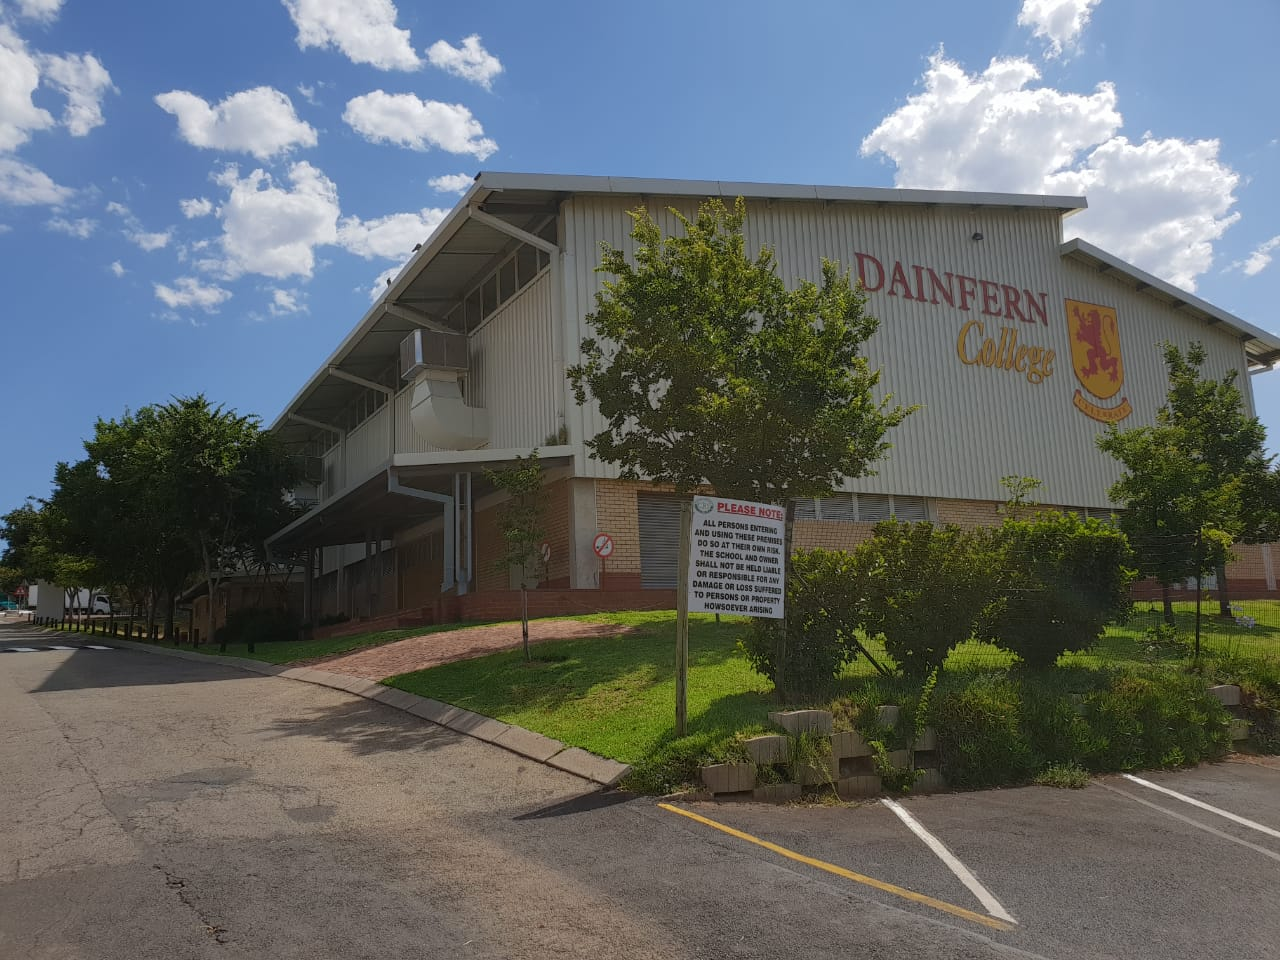 Dainfern College evaporative cooling 1